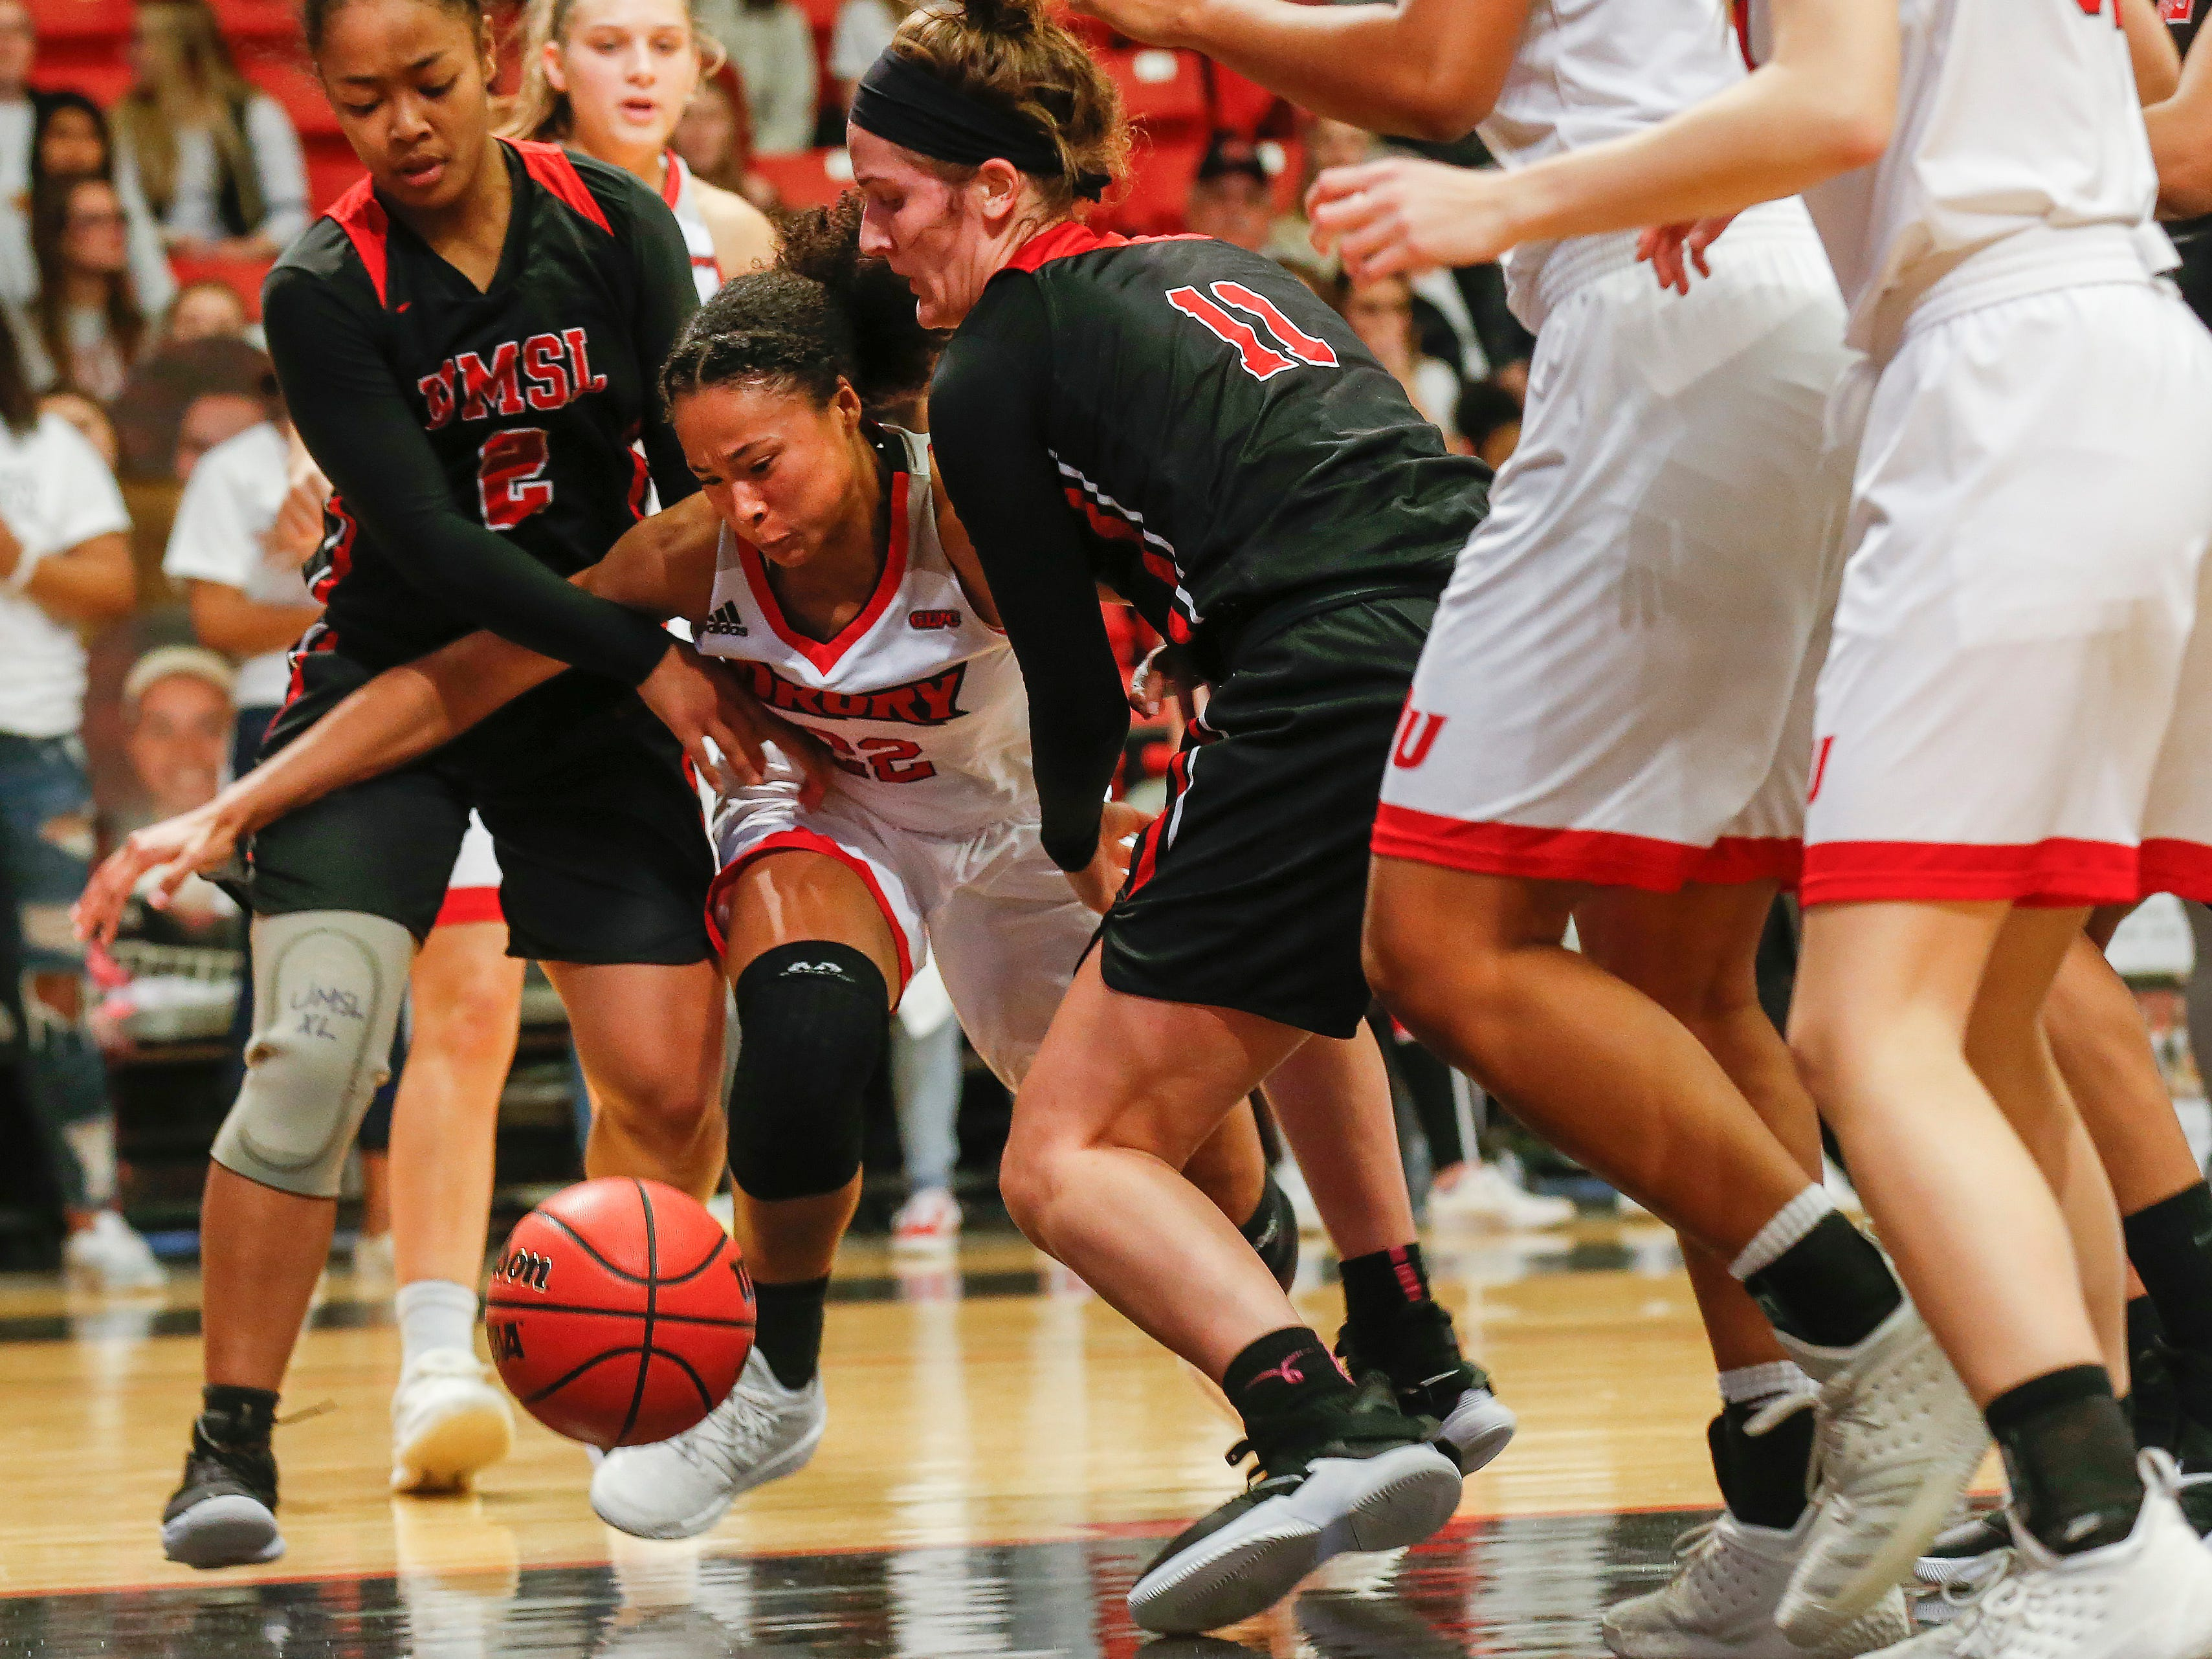 Lauren Shipley, of Drury, goes after a loose ball during the Lady Panthers' 77-44 win over the University of Missouri St. Louis Tritons during the Overflow the O game at the O'Reilly Family Event Center on Saturday, Feb. 9, 2019.